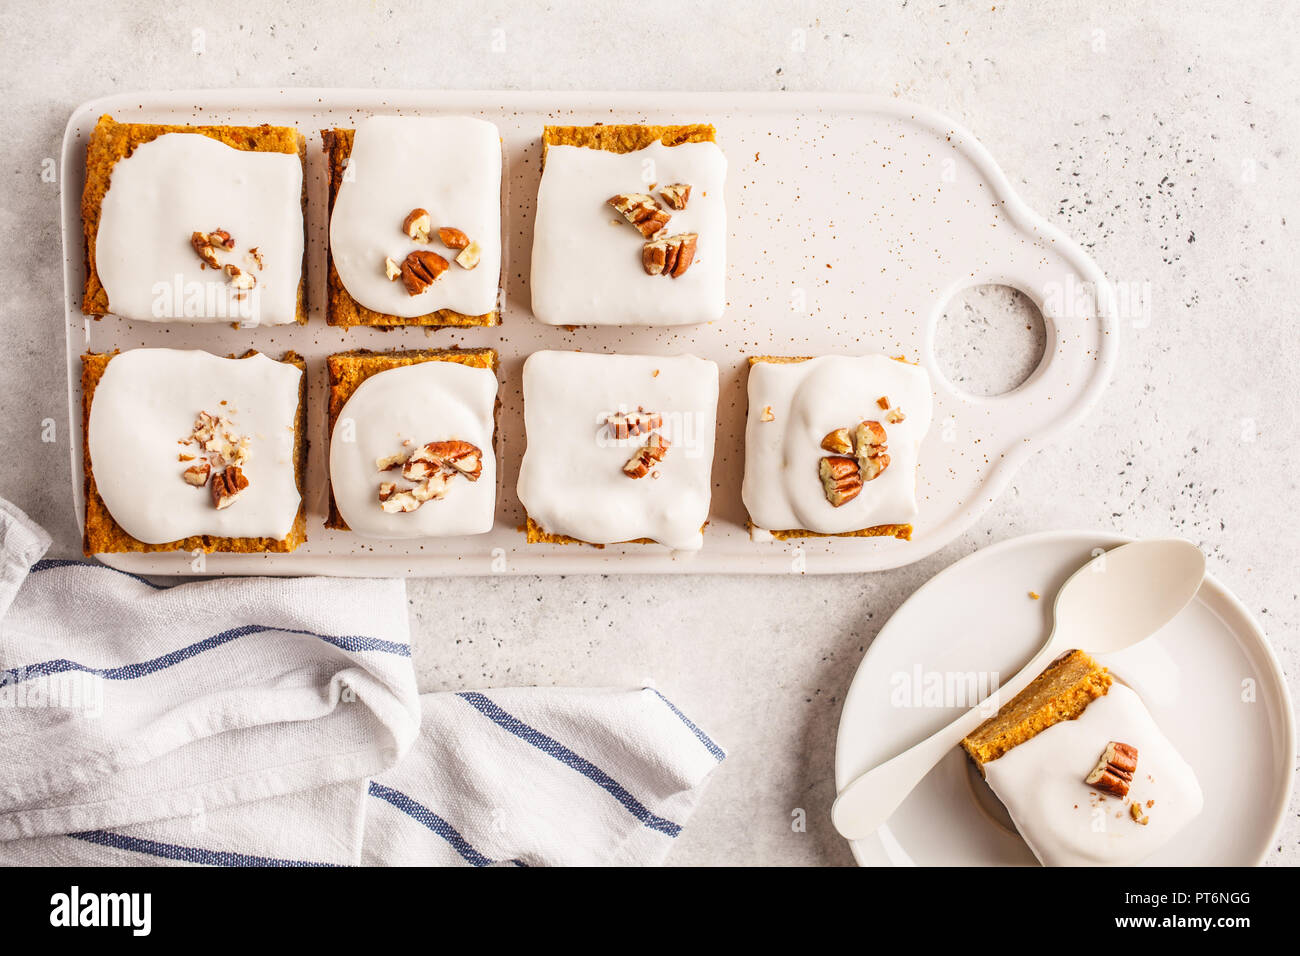 Vegan carrot cake with coconut cream and pecans on white board. Clean eating, healthy food, plant based diet concept. - Stock Image